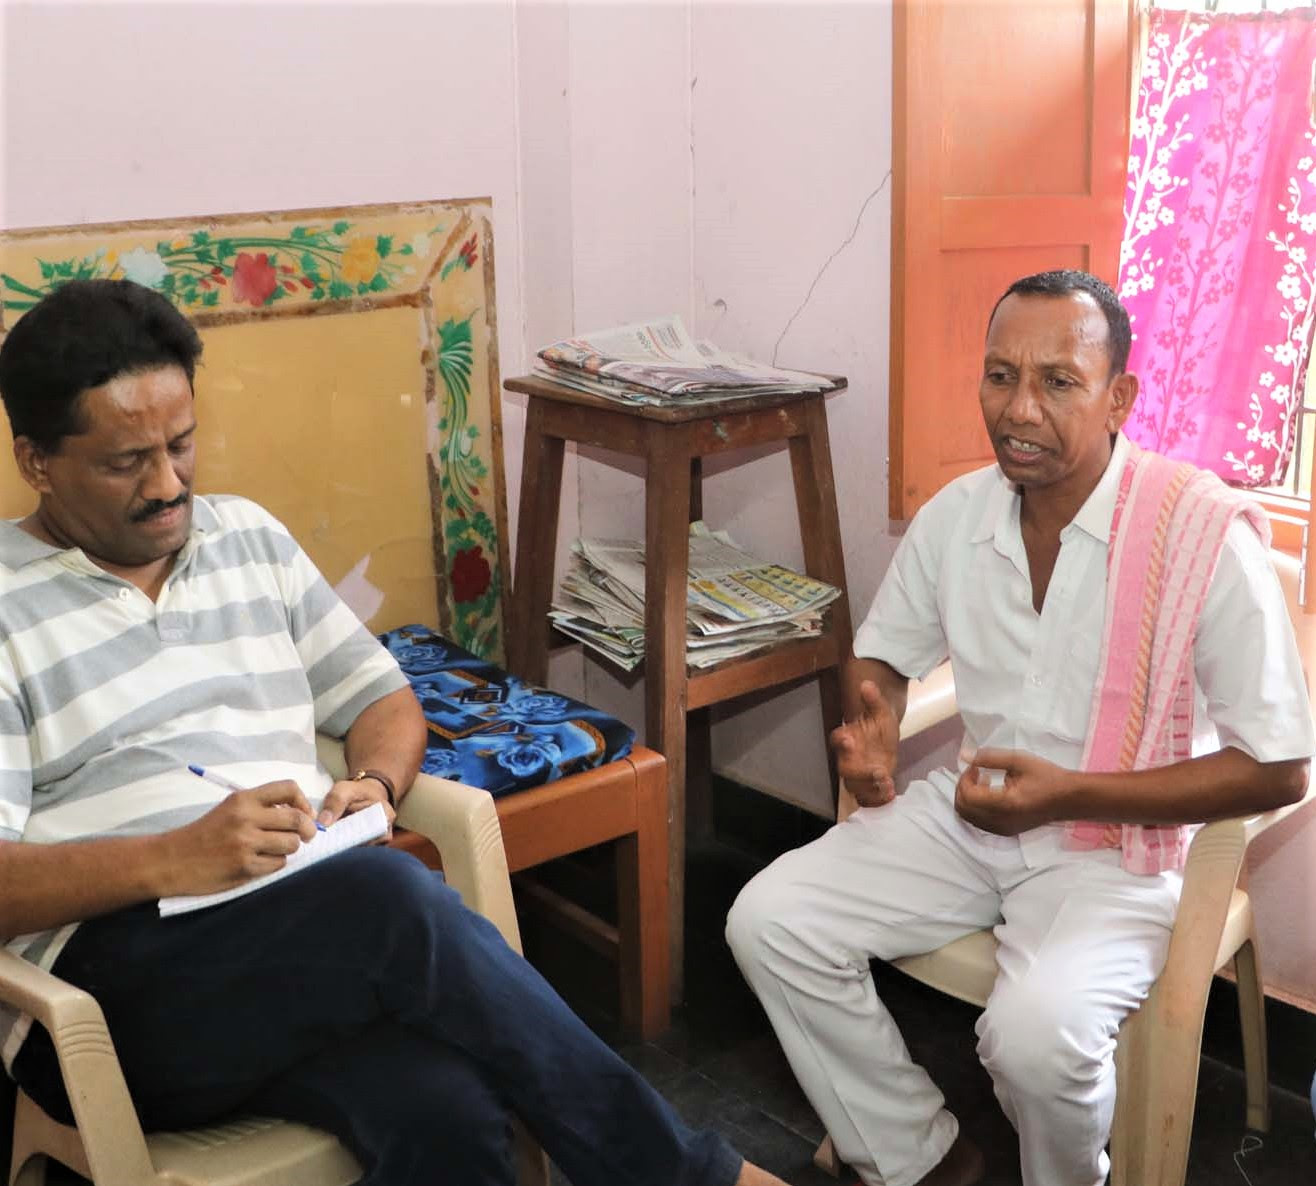 ornath Chalanseth, right, with author and journalist Anto Akkara after release in May 2019. (Morning Star News)